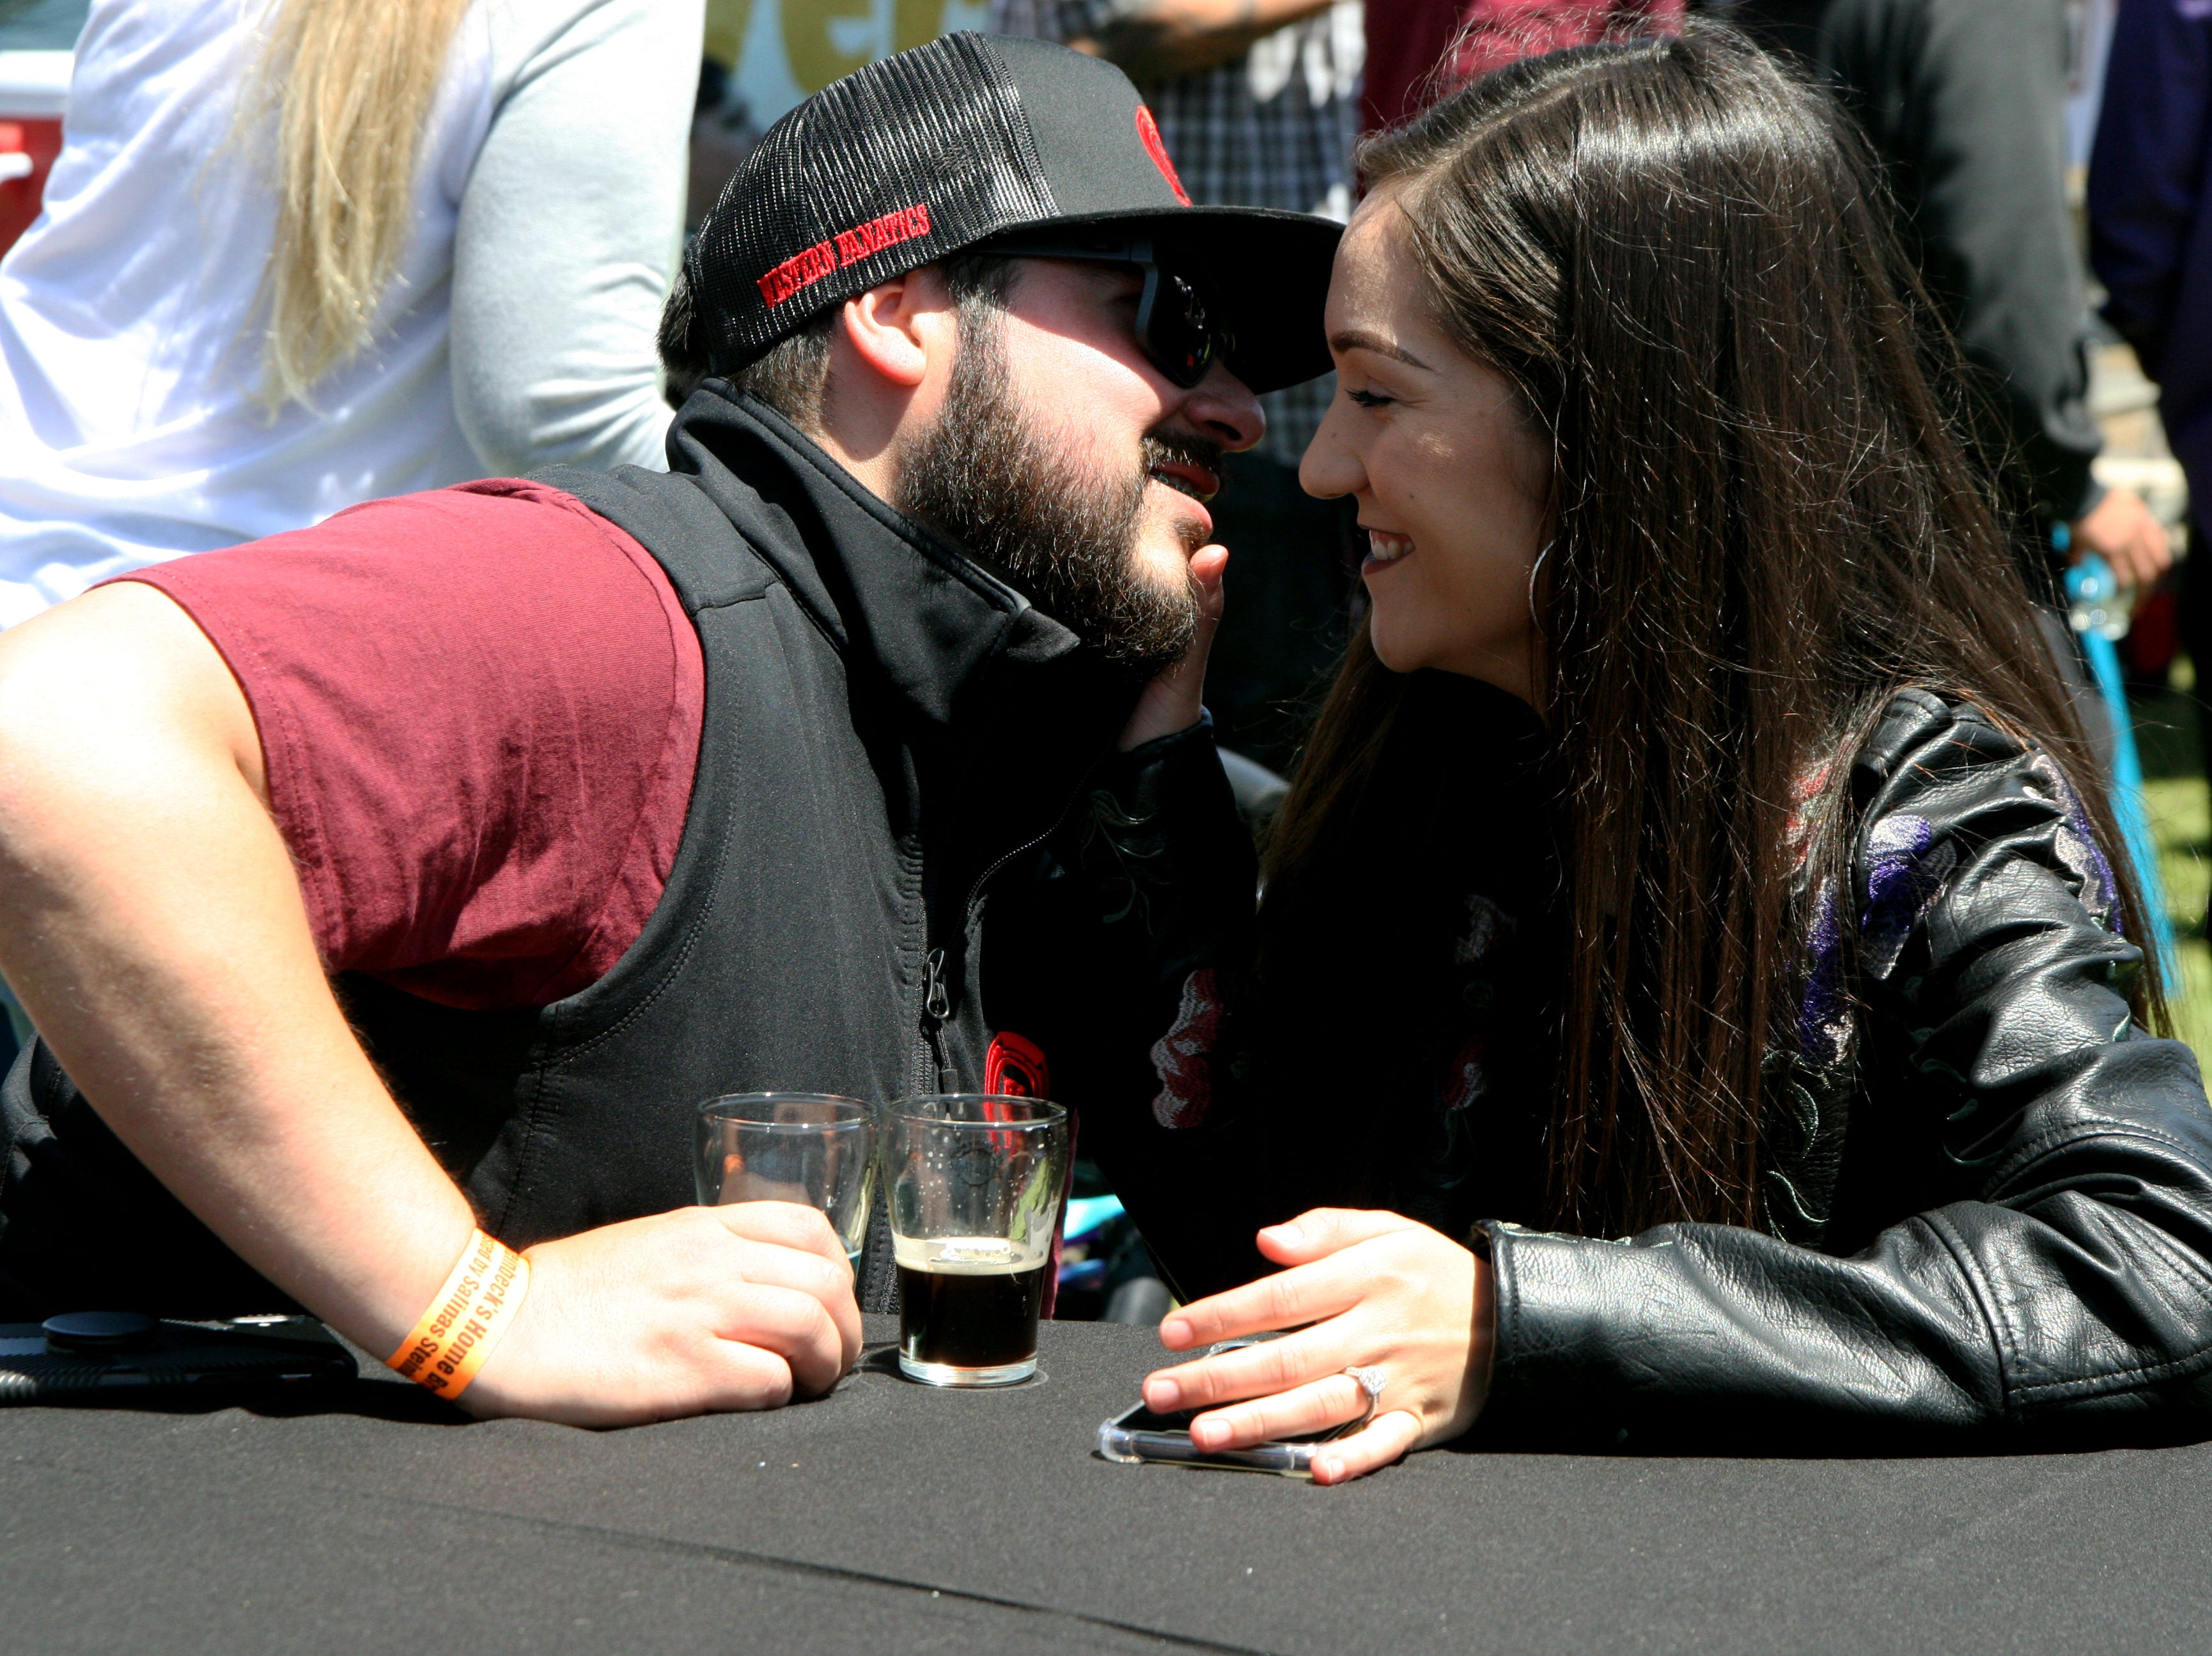 Chrystian Hernandez and Liz Andalon share a kiss and some beers at the brew fest. Hernandez had the blue 'Sour Belly' and the 'Pastel Mexicano.' May 4, 2019.